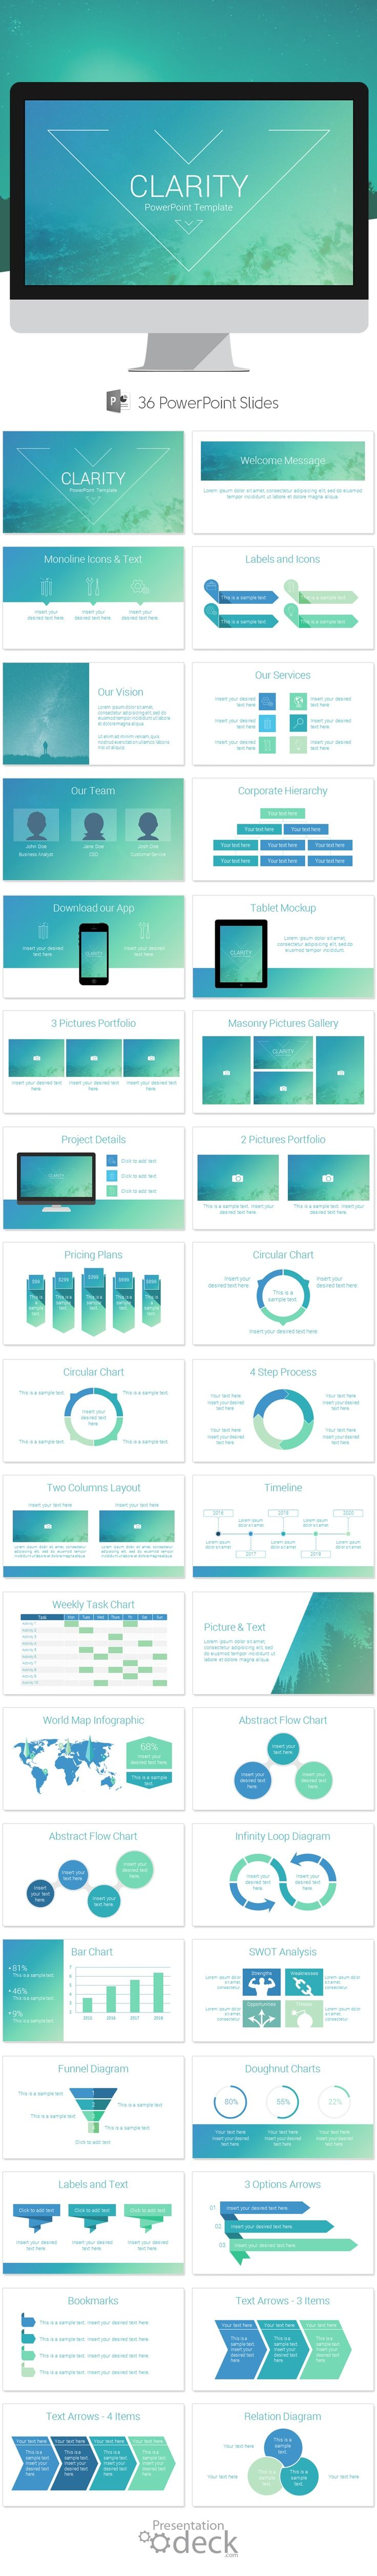 Clarity is an awesome PowerPoint presentation template that includes 36 pre-designed slides. Use this theme for presentations on mobile technologies, apps showcase, marketing & sale pitch, etc. #powerpoint #powerpoint_templates #presentations #abstract #modern